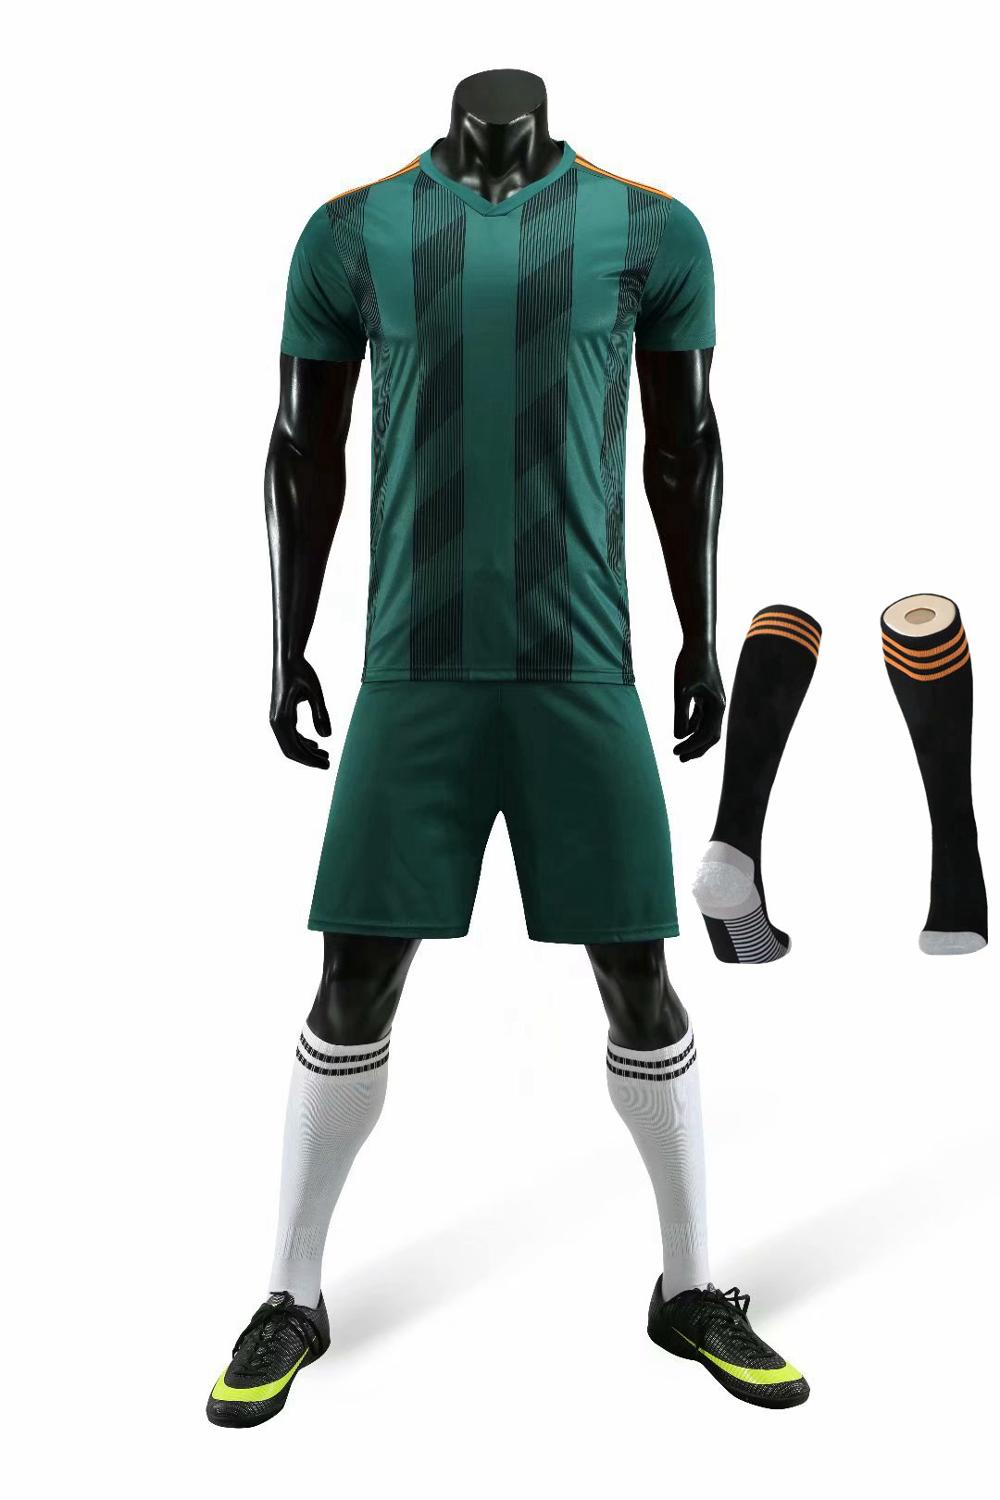 Children Sets football uniforms boys and girls sports kids youth training suits blank custom print soccer set with socks 20